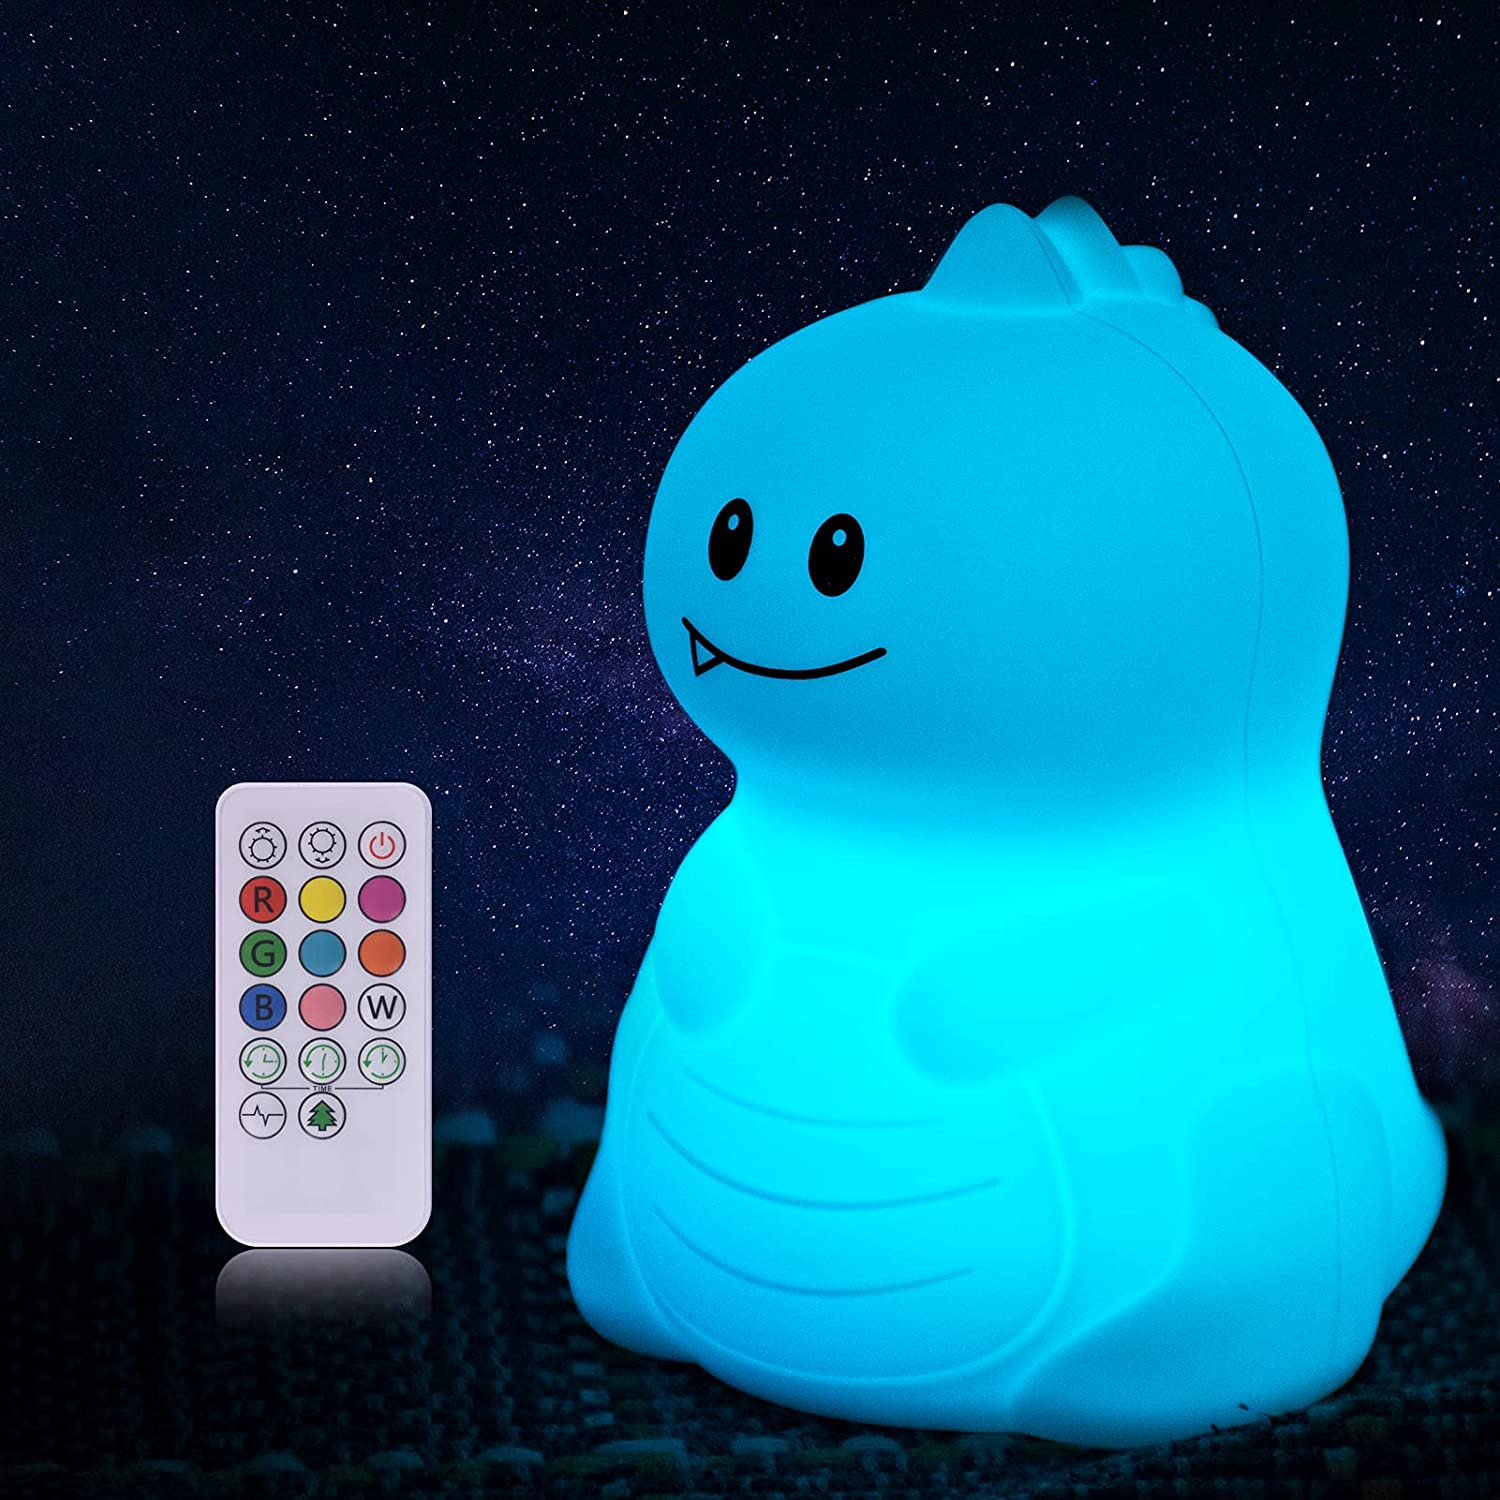 Dinosaur Night Light, Kids Portable Color Changing Battery Rechargeable Silicone Kawaii Cute Nursery Lamp for Baby Children Toddler Teenage Girl Birthday Gift Bedroom Decor with Touch/Remote Control